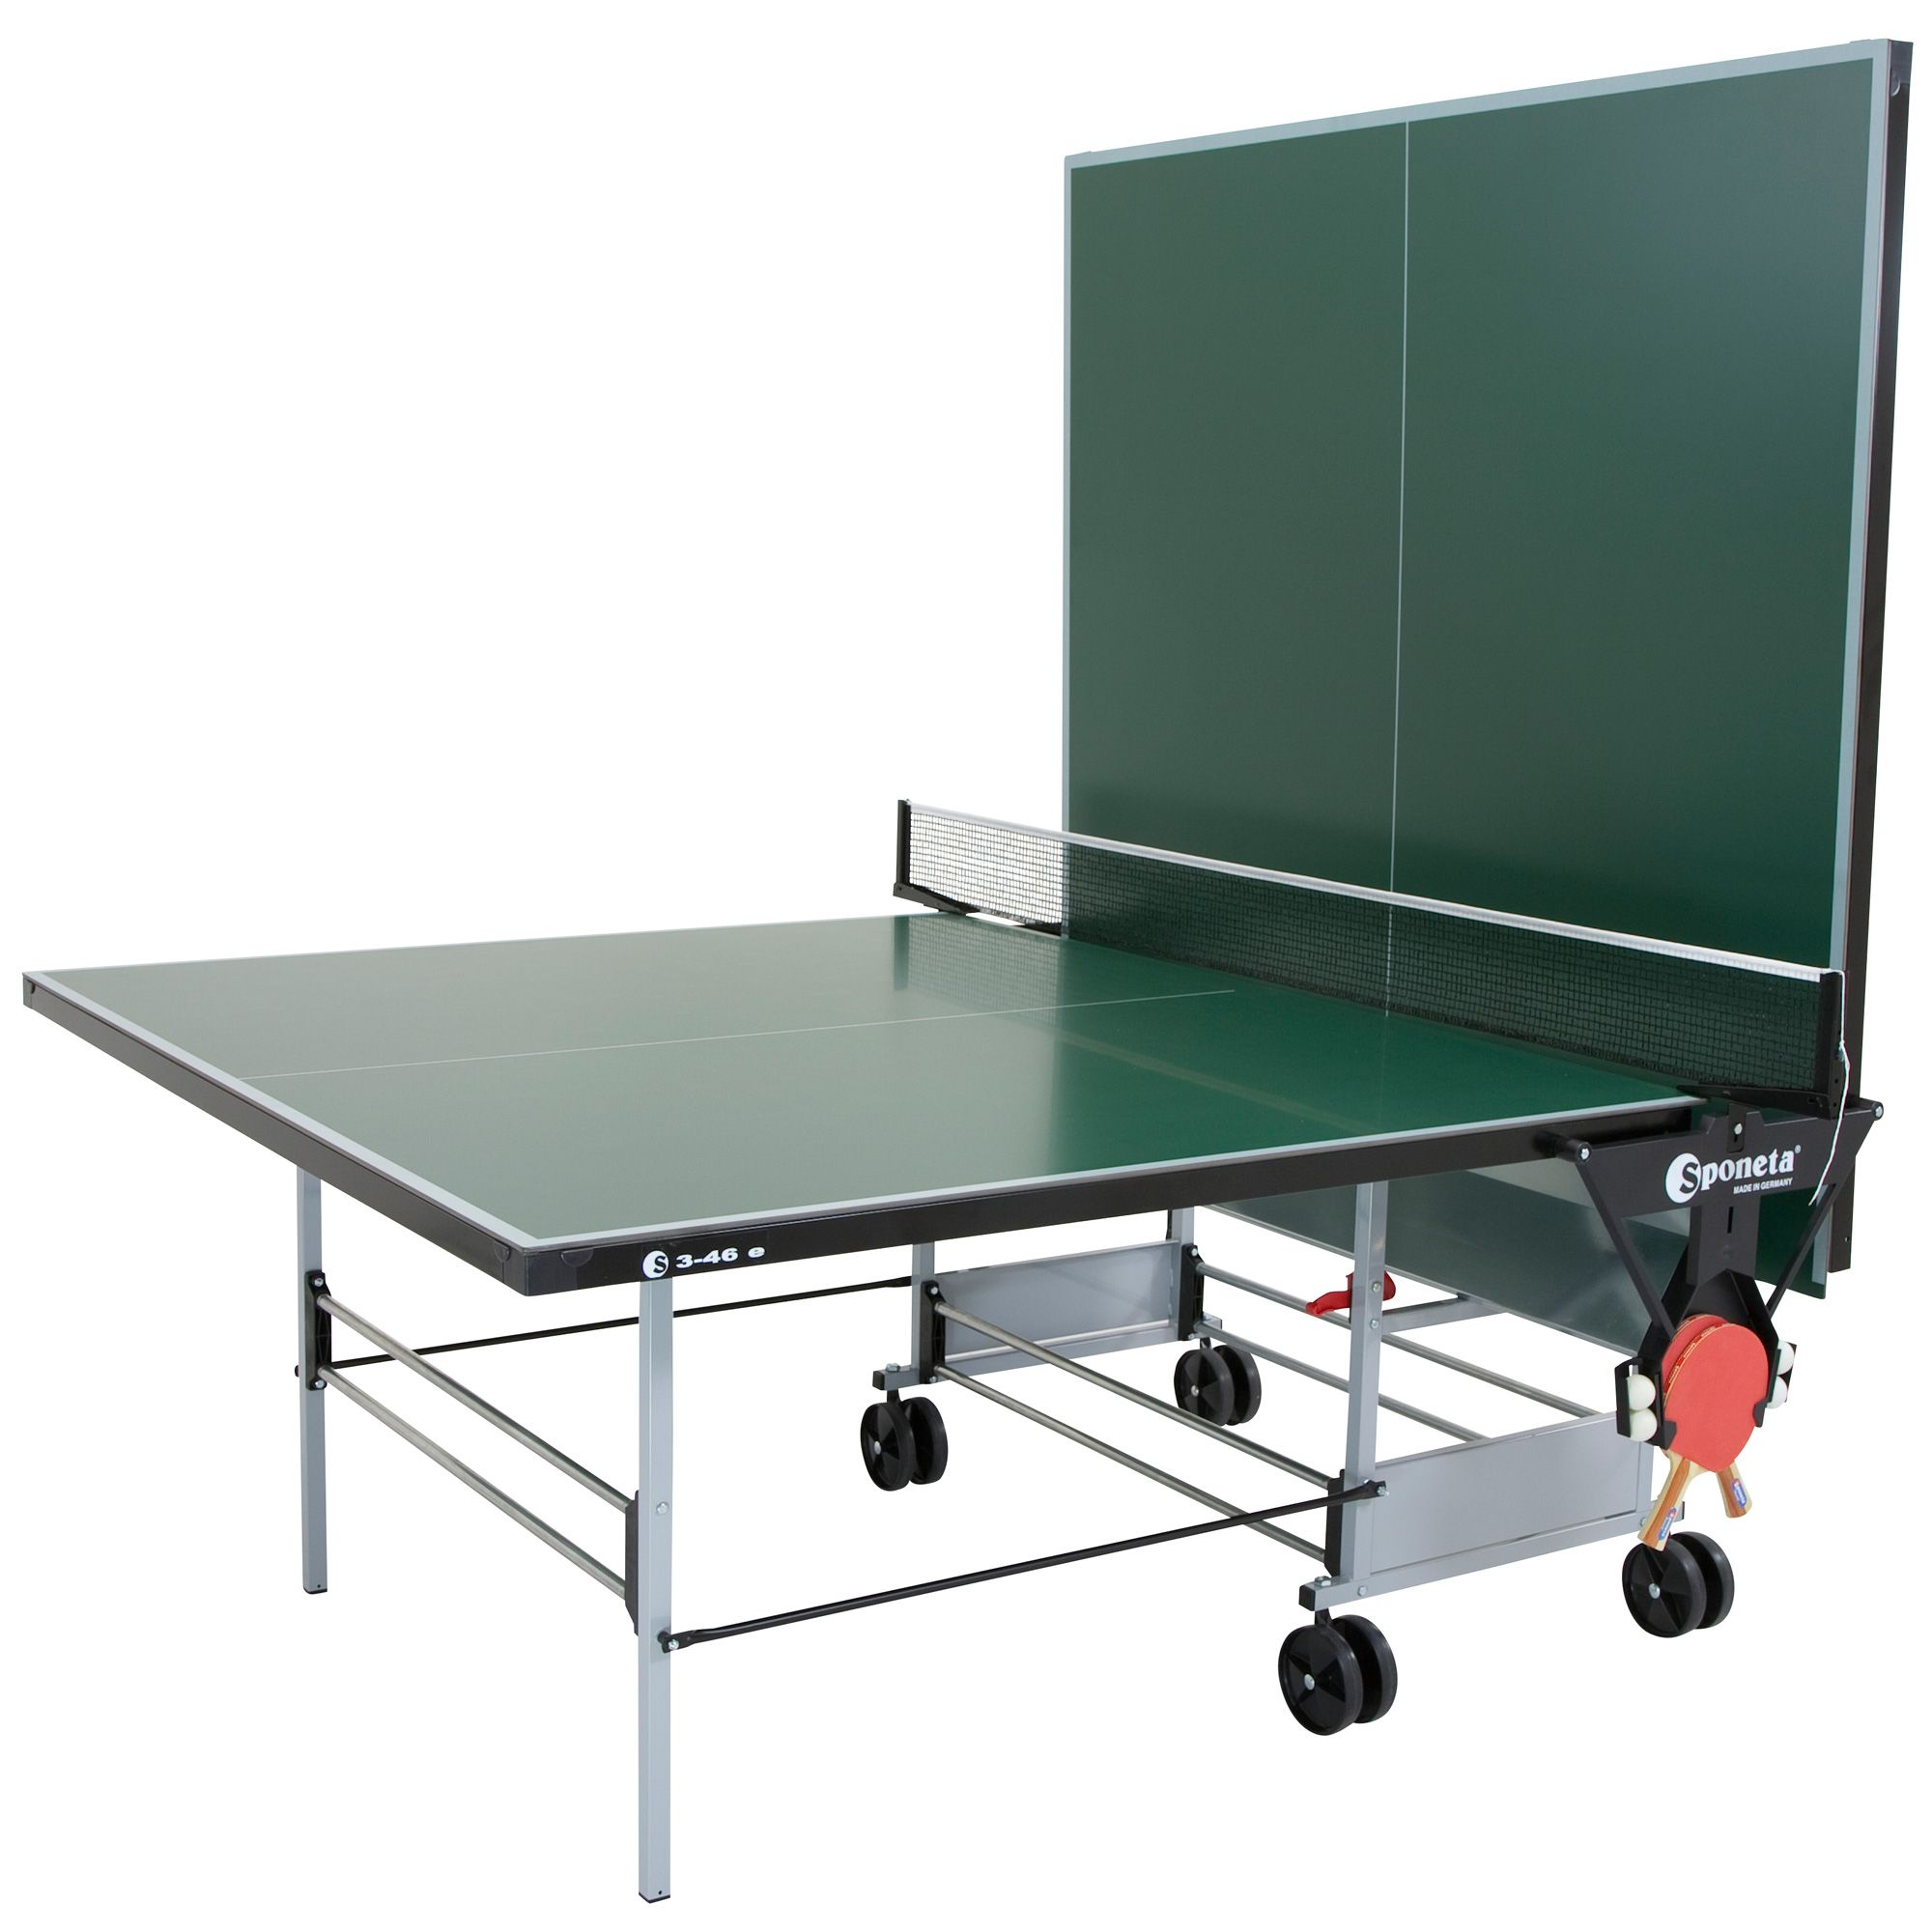 Sponeta sportline outdoor table tennis table - Weatherproof table tennis table ...